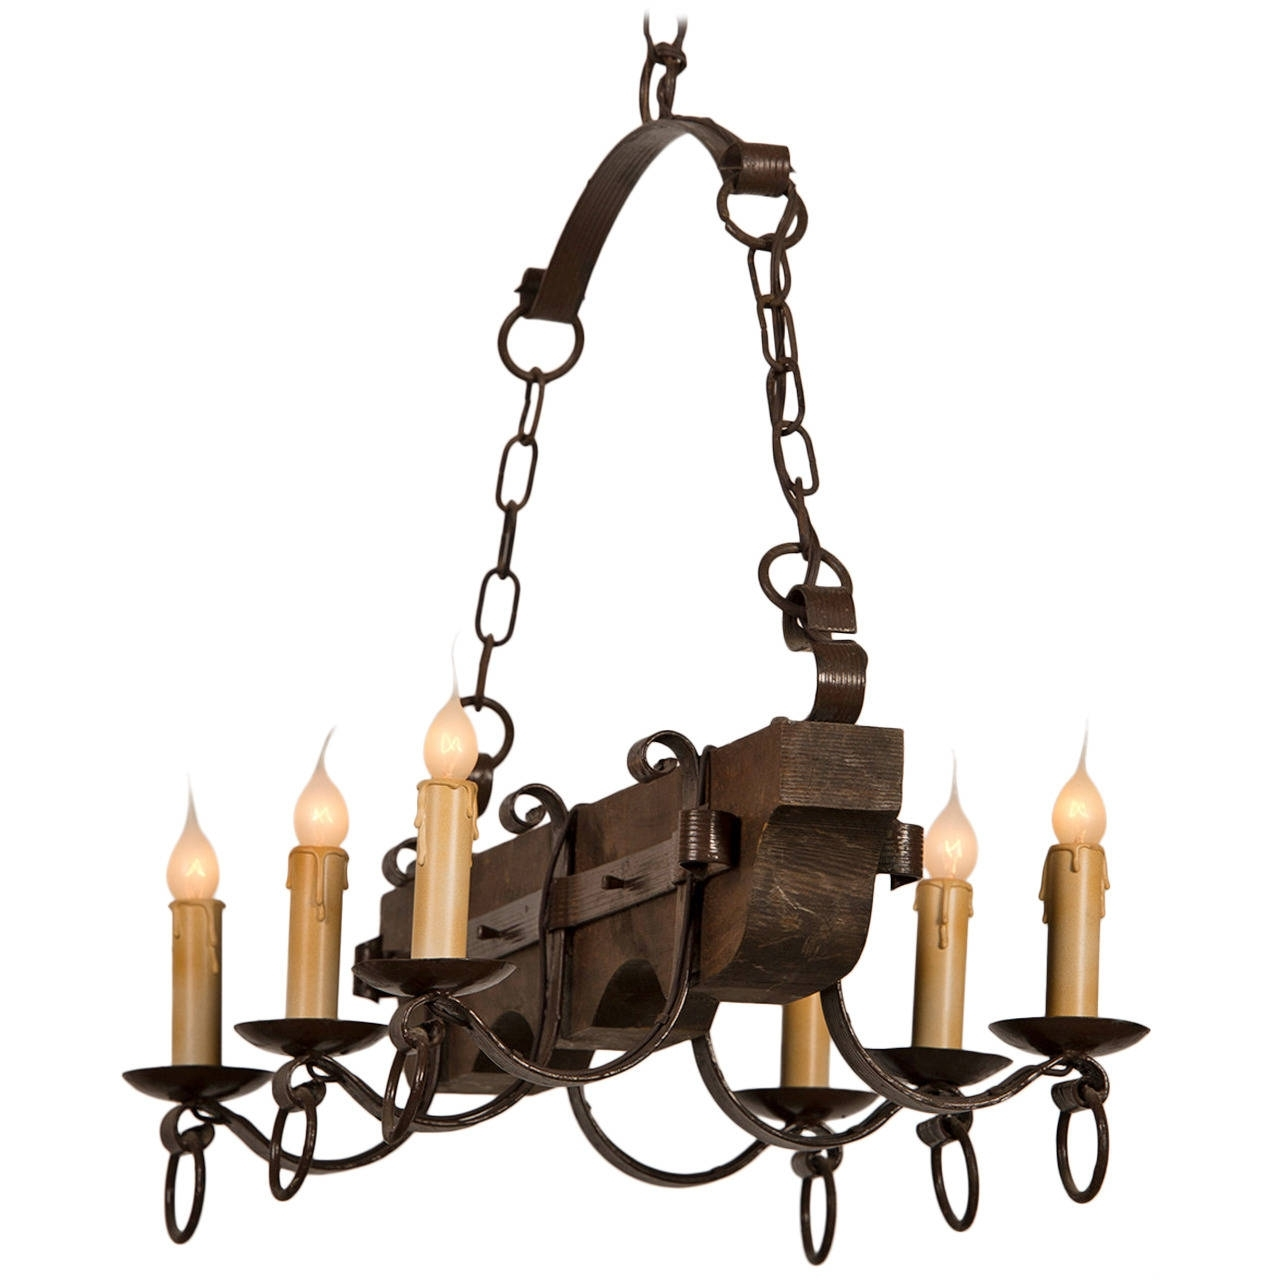 Famous Vintage Wrought Iron Chandelier Throughout Rustic Kitchen Or Dining Room Lighting Ideas With Vertical Wooden (View 13 of 20)